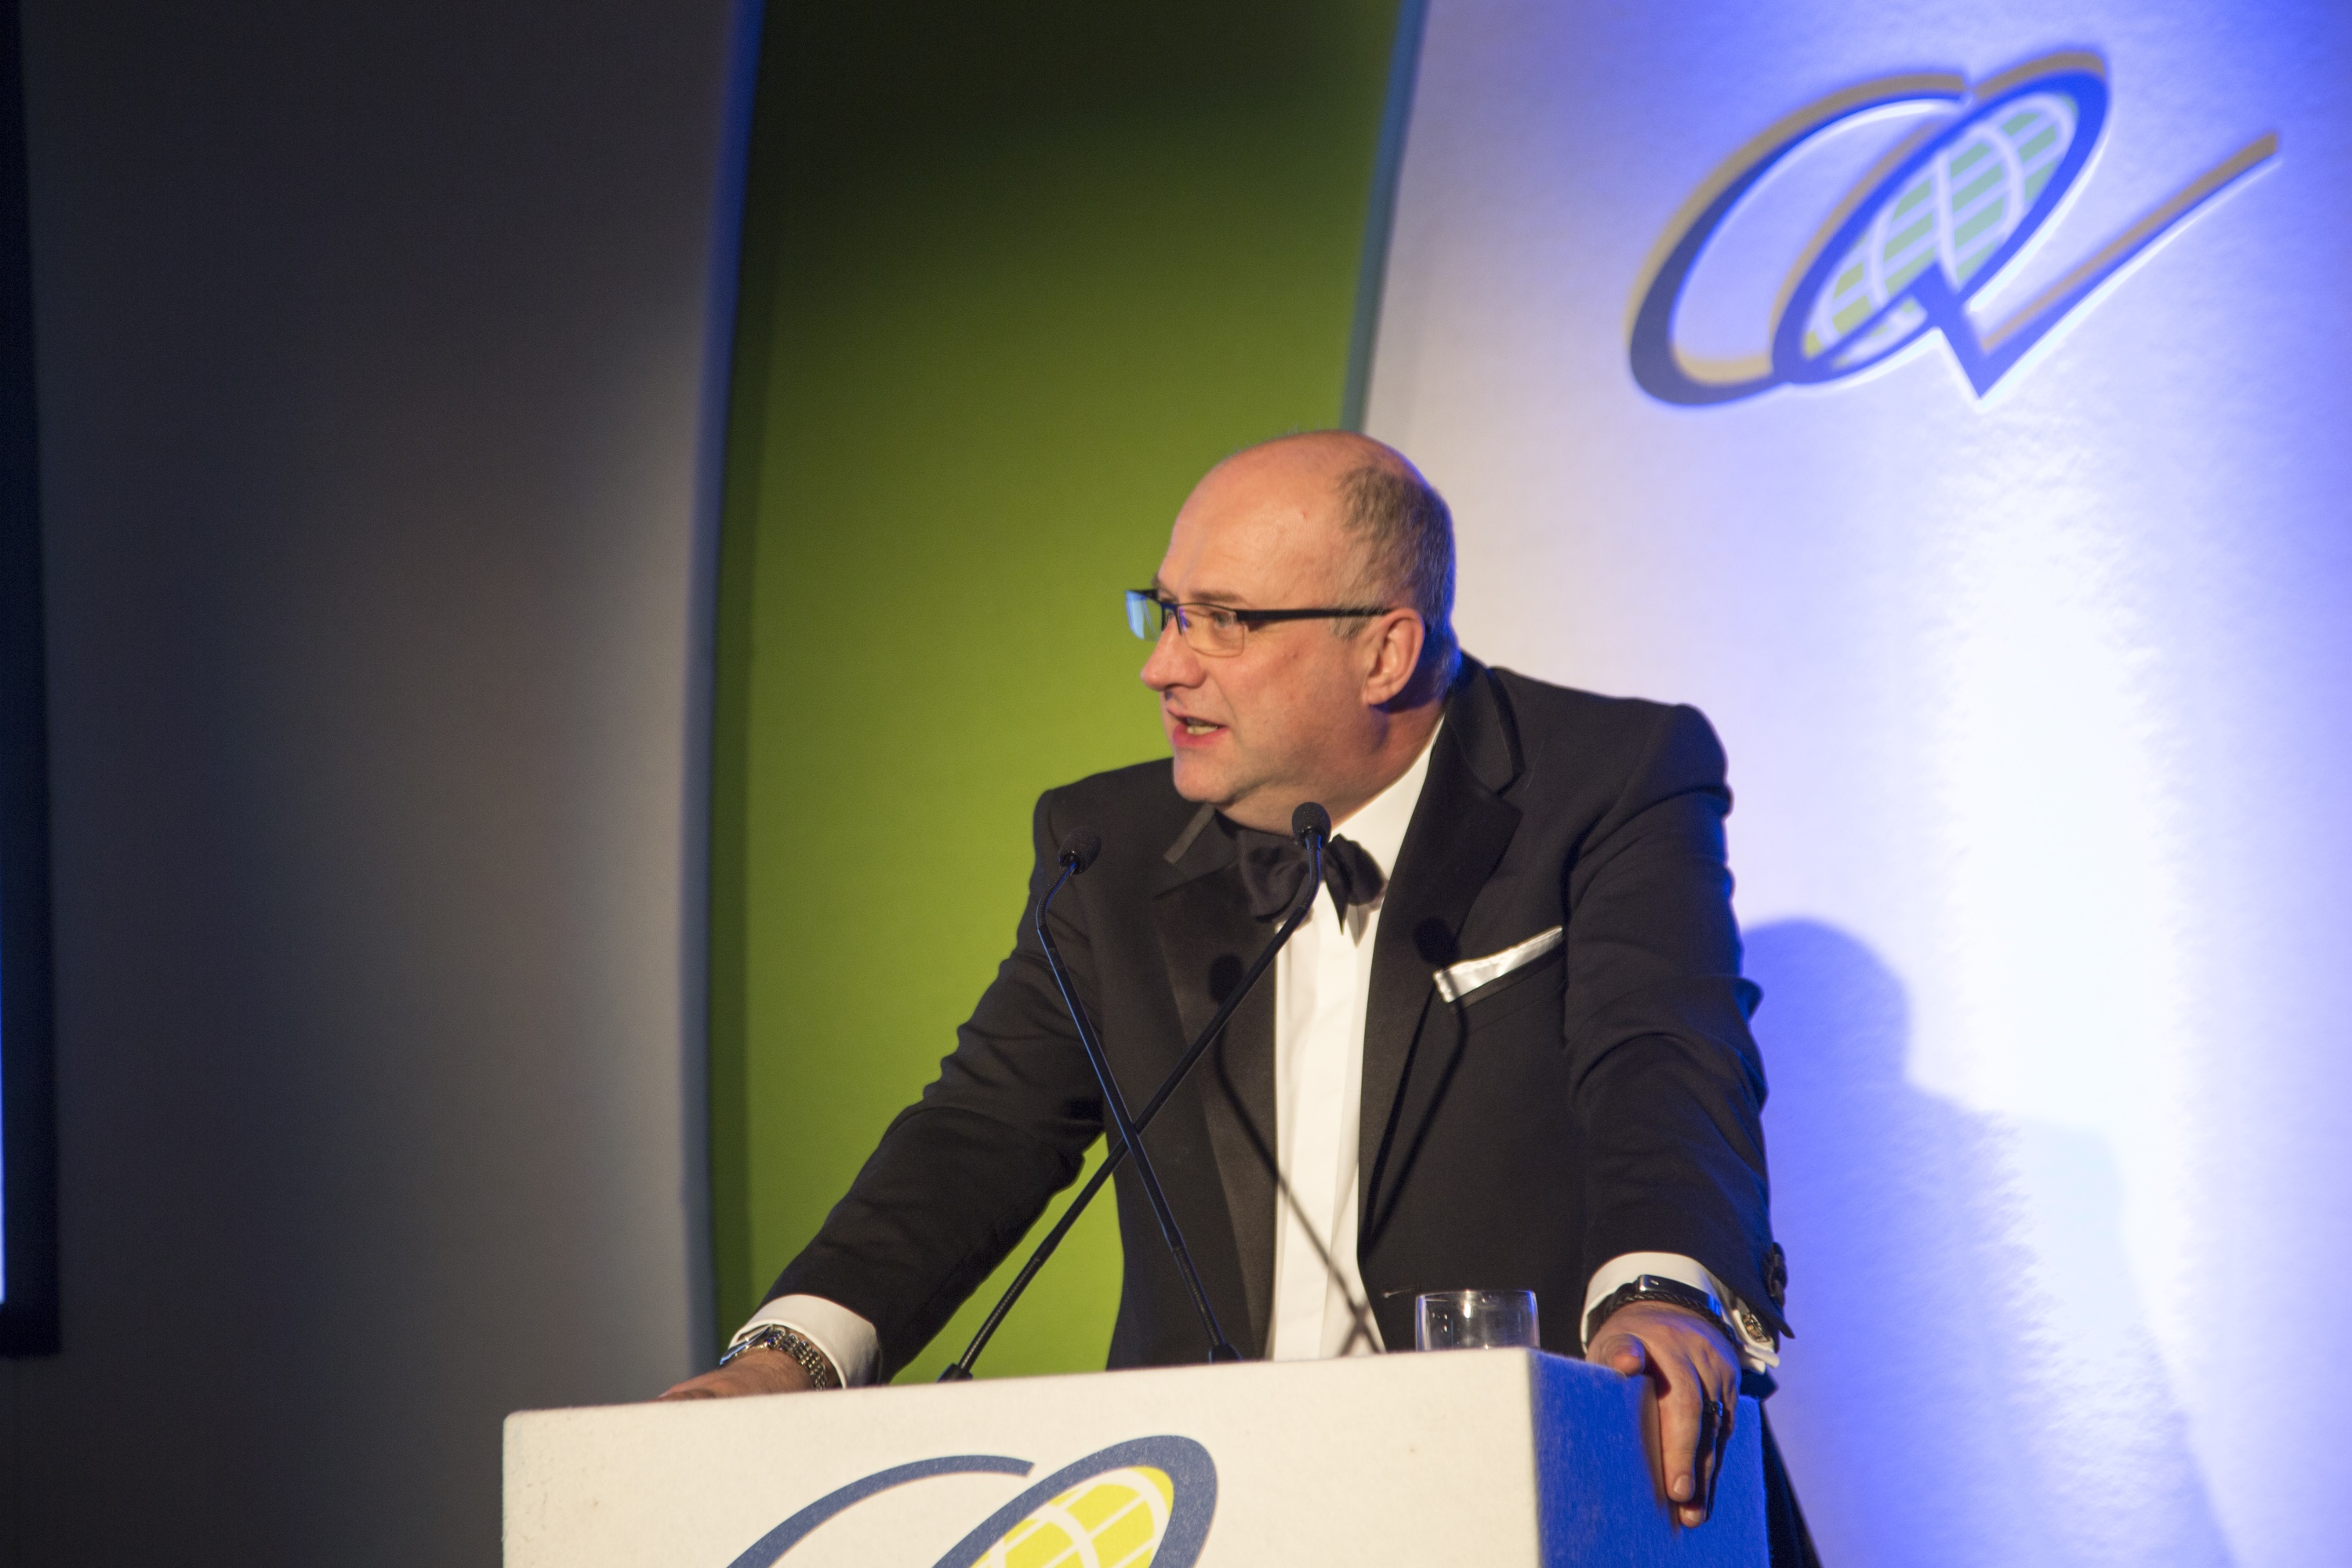 Ian Nicholson at CEEQUAL Outstanding Achievement Awards 2016